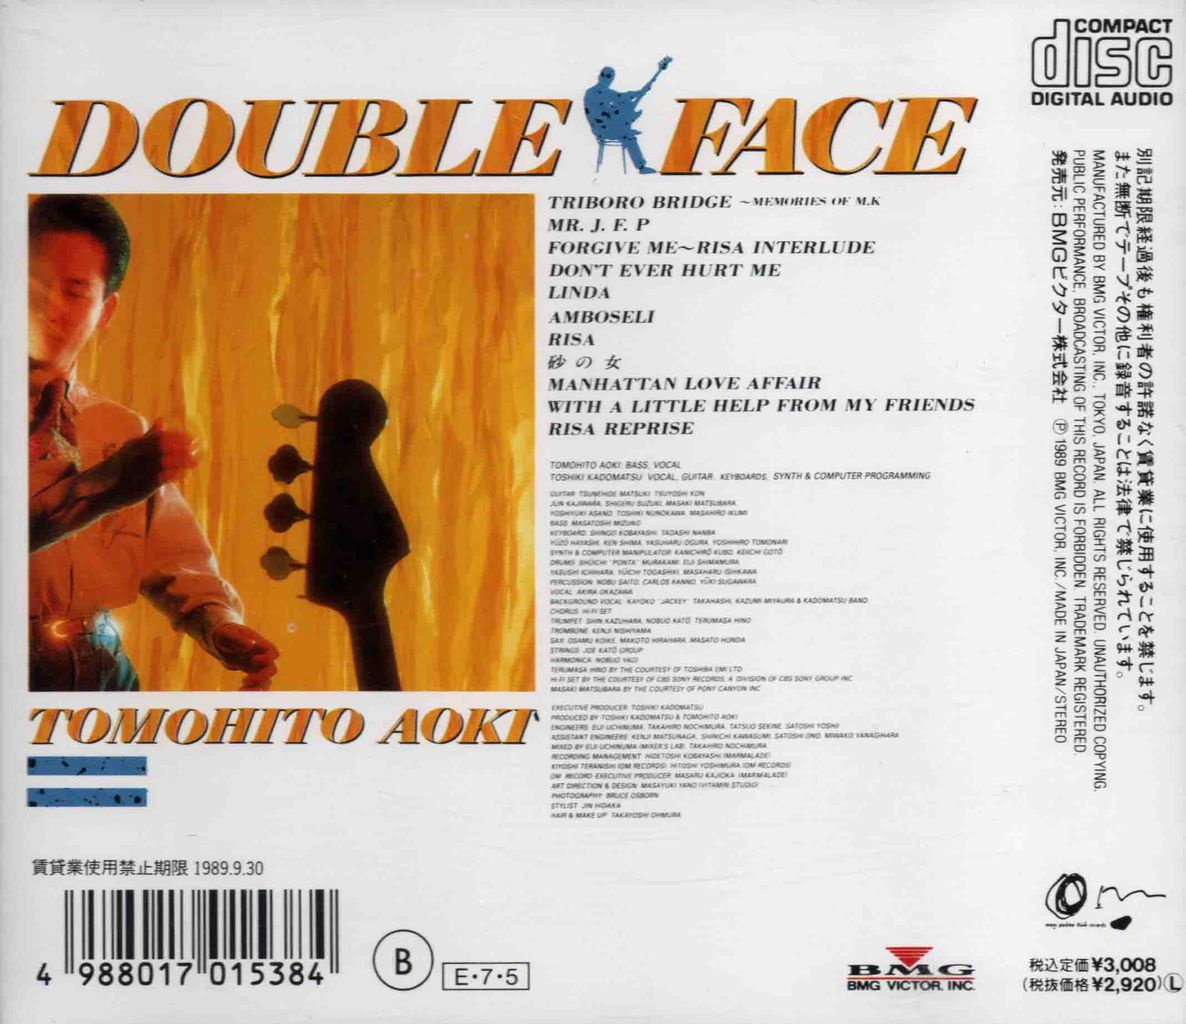 DOUBLE FACE-2